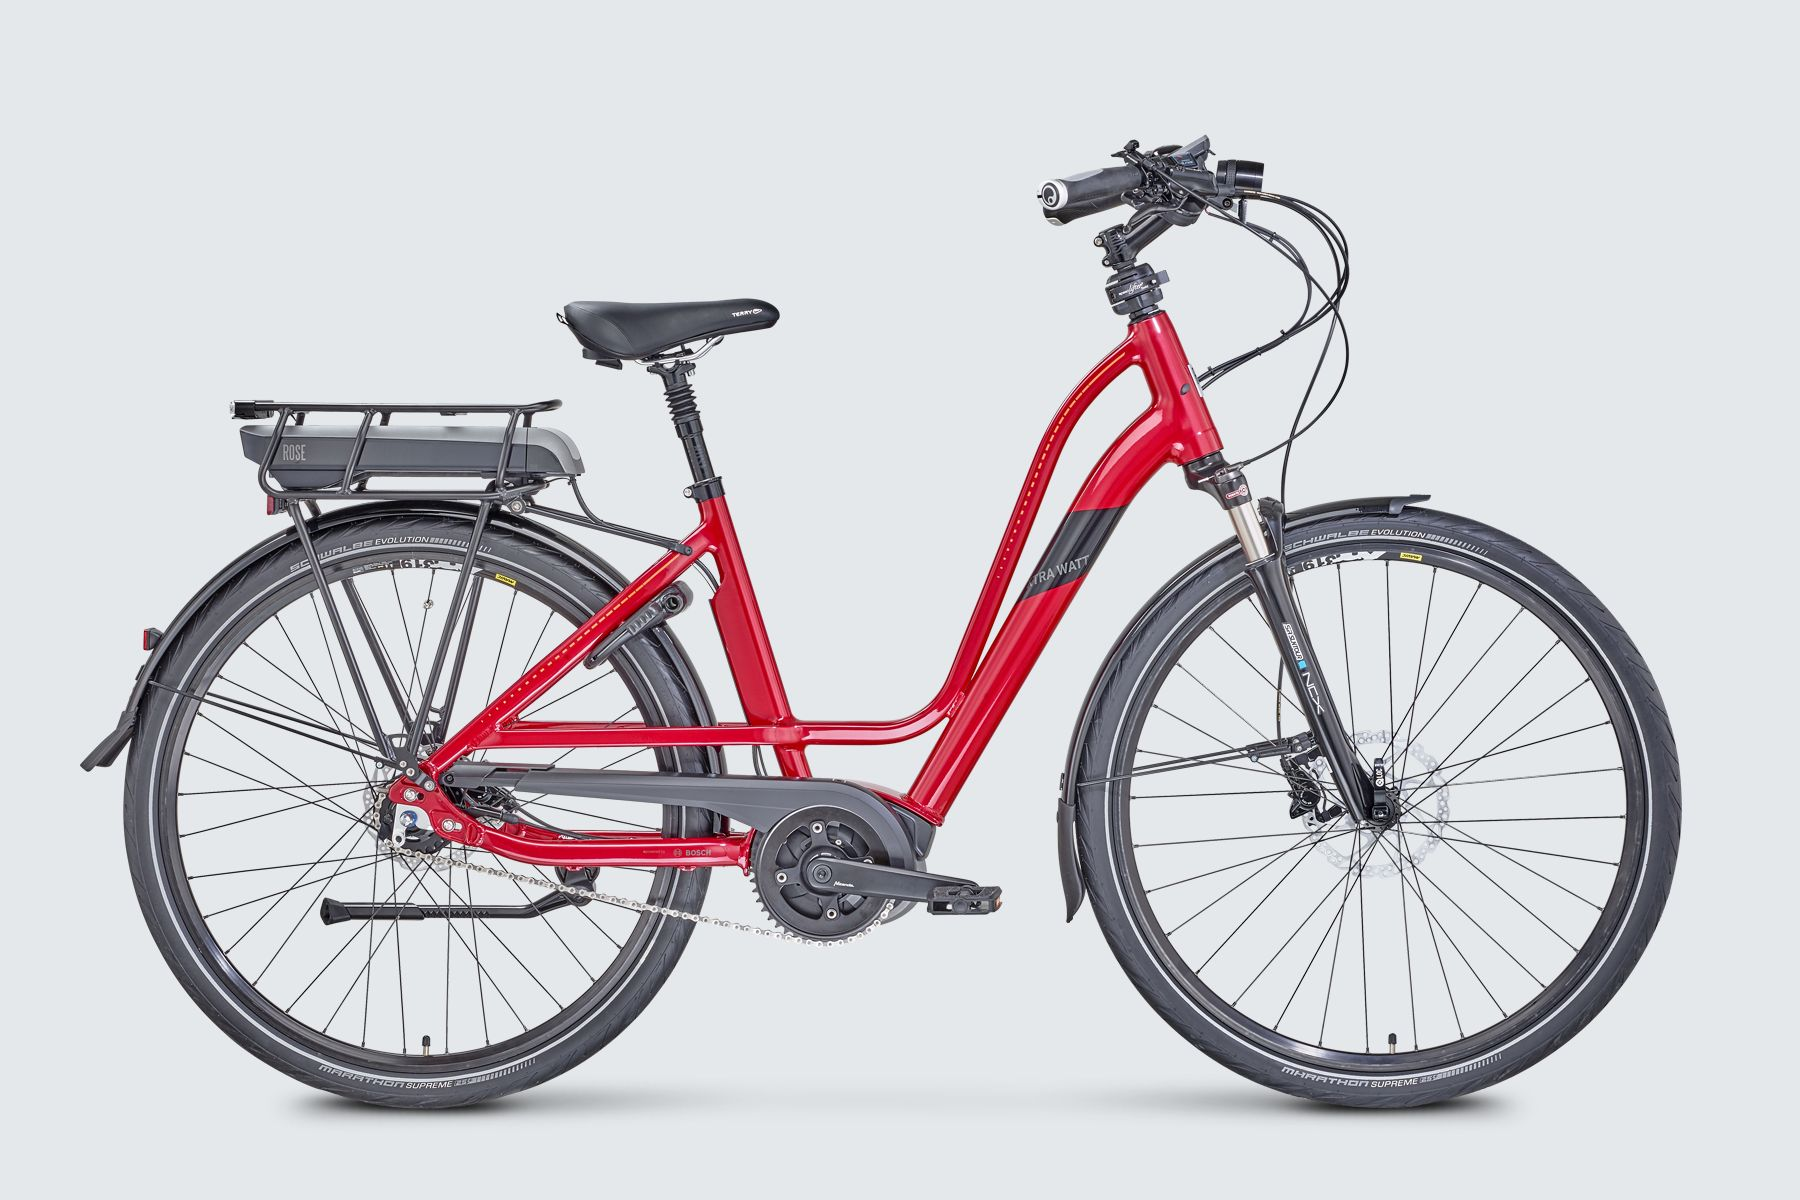 XTRA WATT ALFINE 11 DAMEN KOMFORT BIKE NOW!